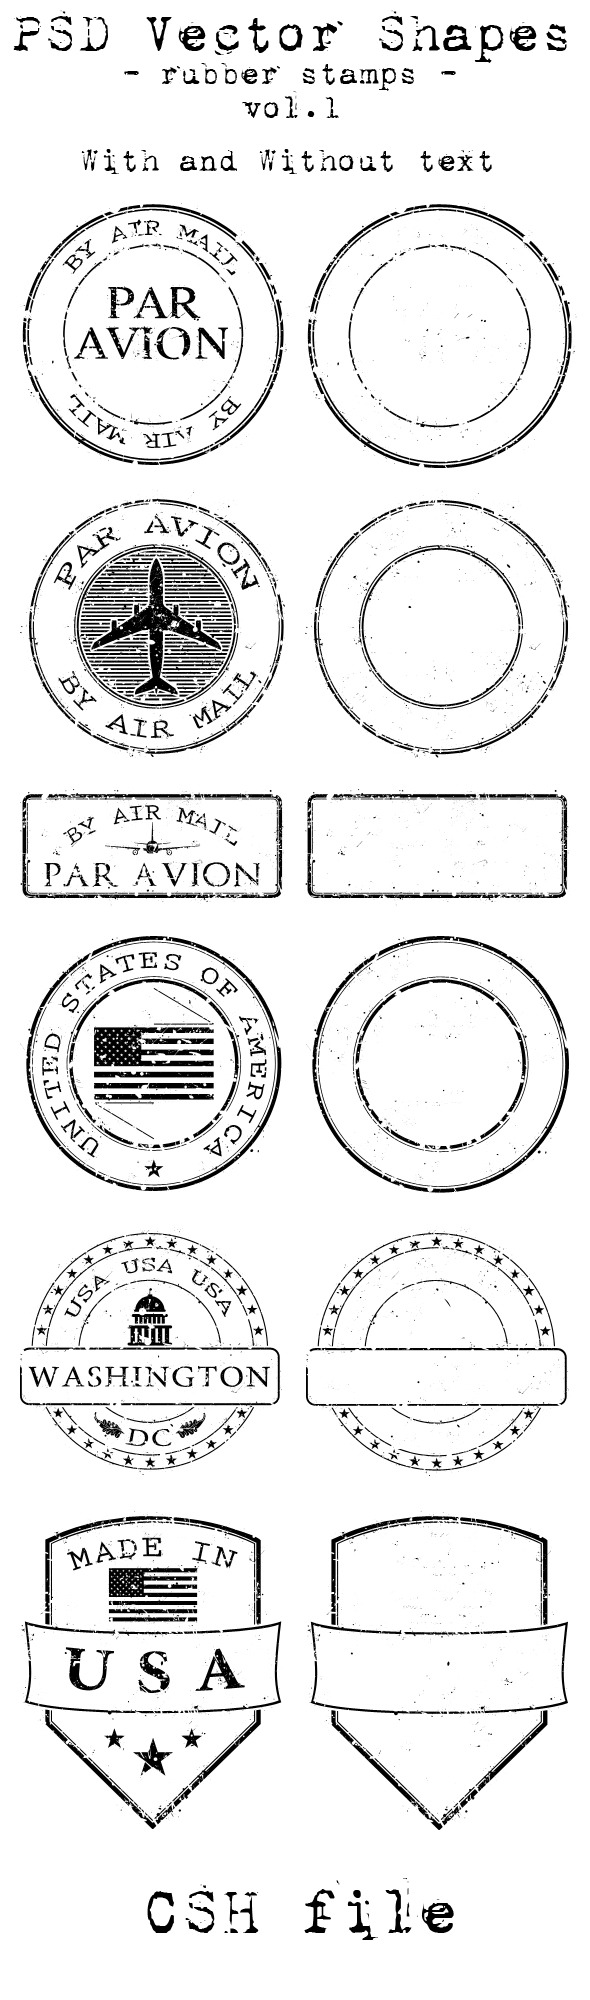 PSD Vector Shapes - rubber stamps - Vol 1. - Miscellaneous Shapes